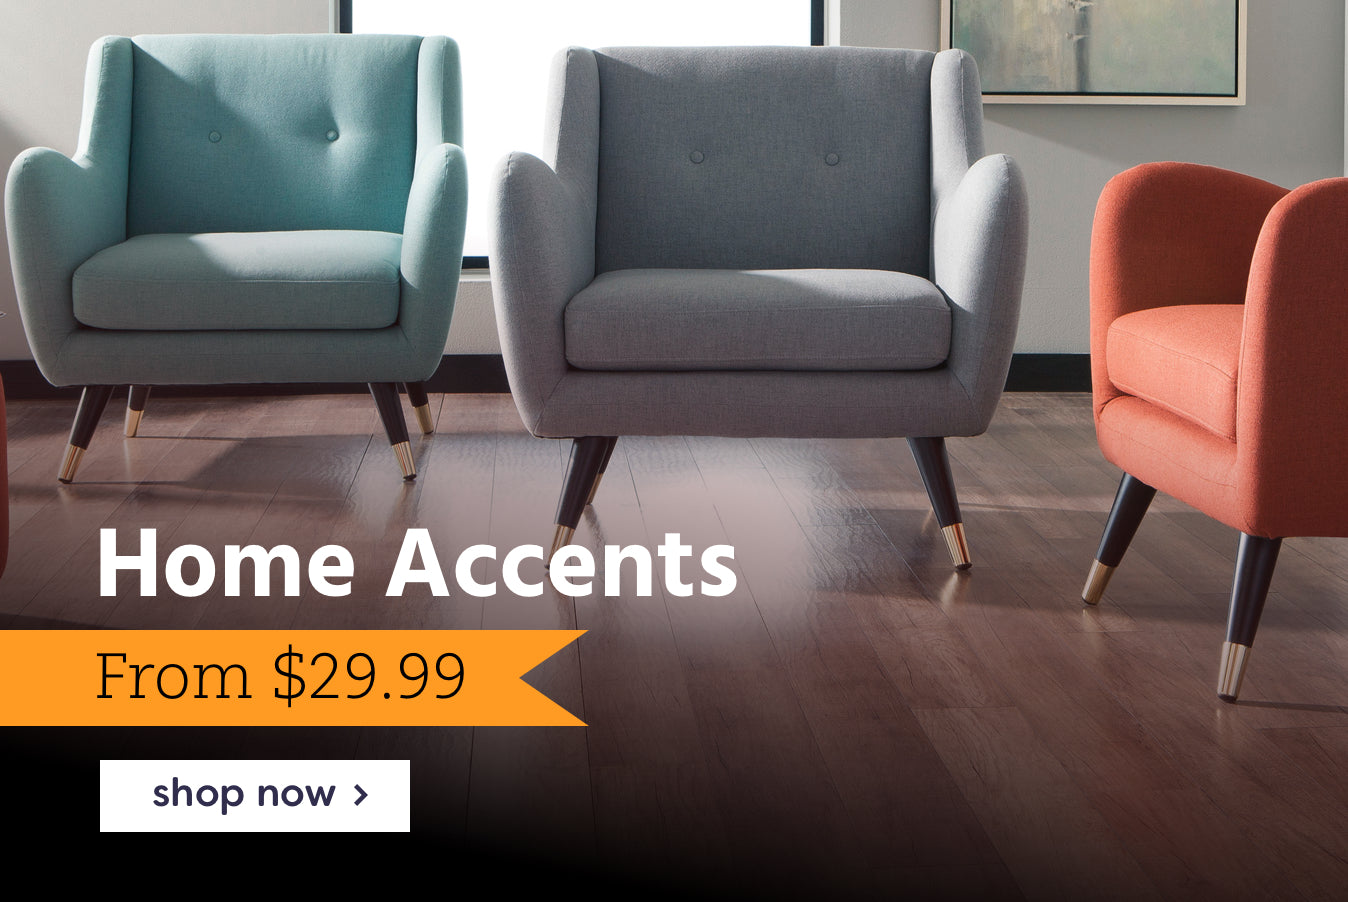 home accents from $29.99